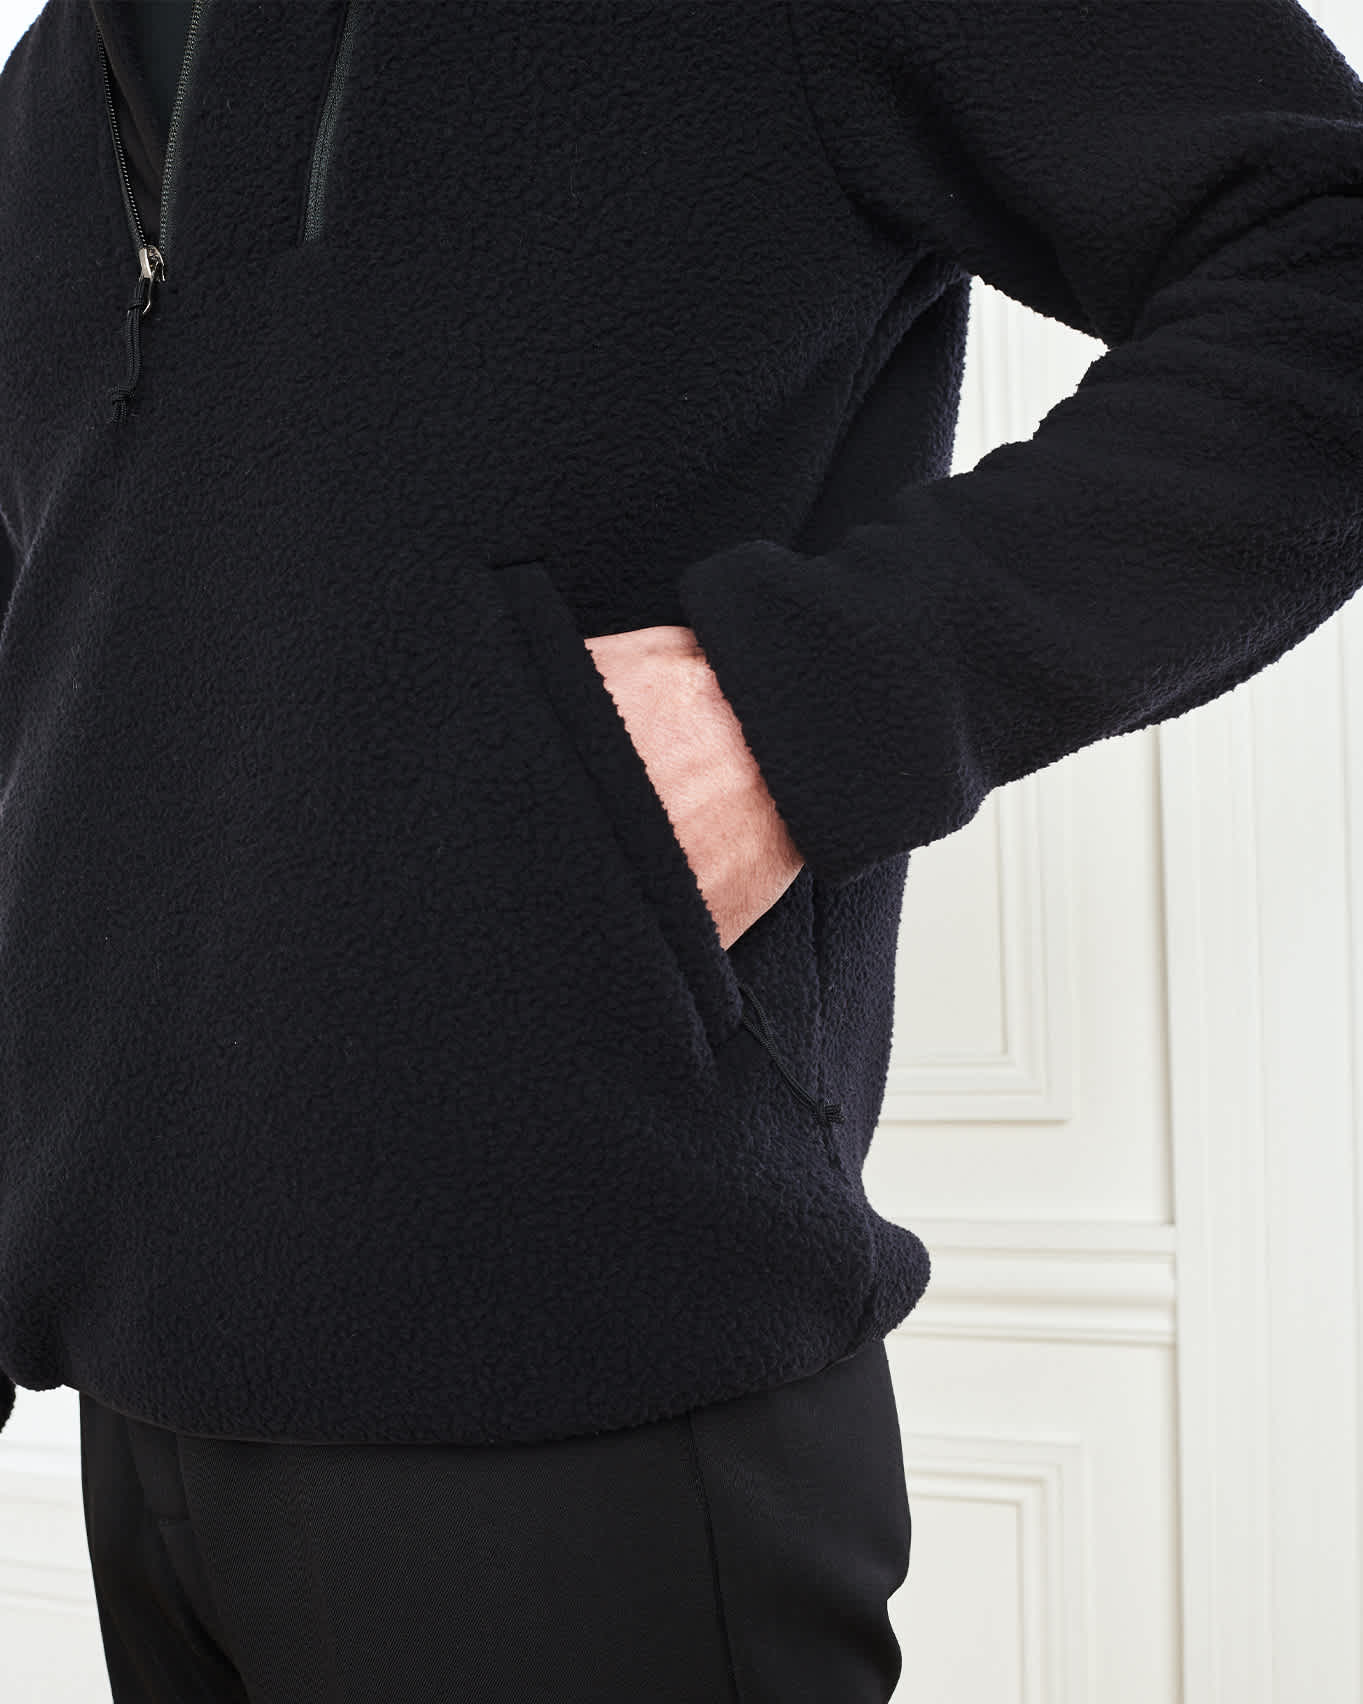 Recycled Sherpa Fleece Pullover Jacket - Black - 4